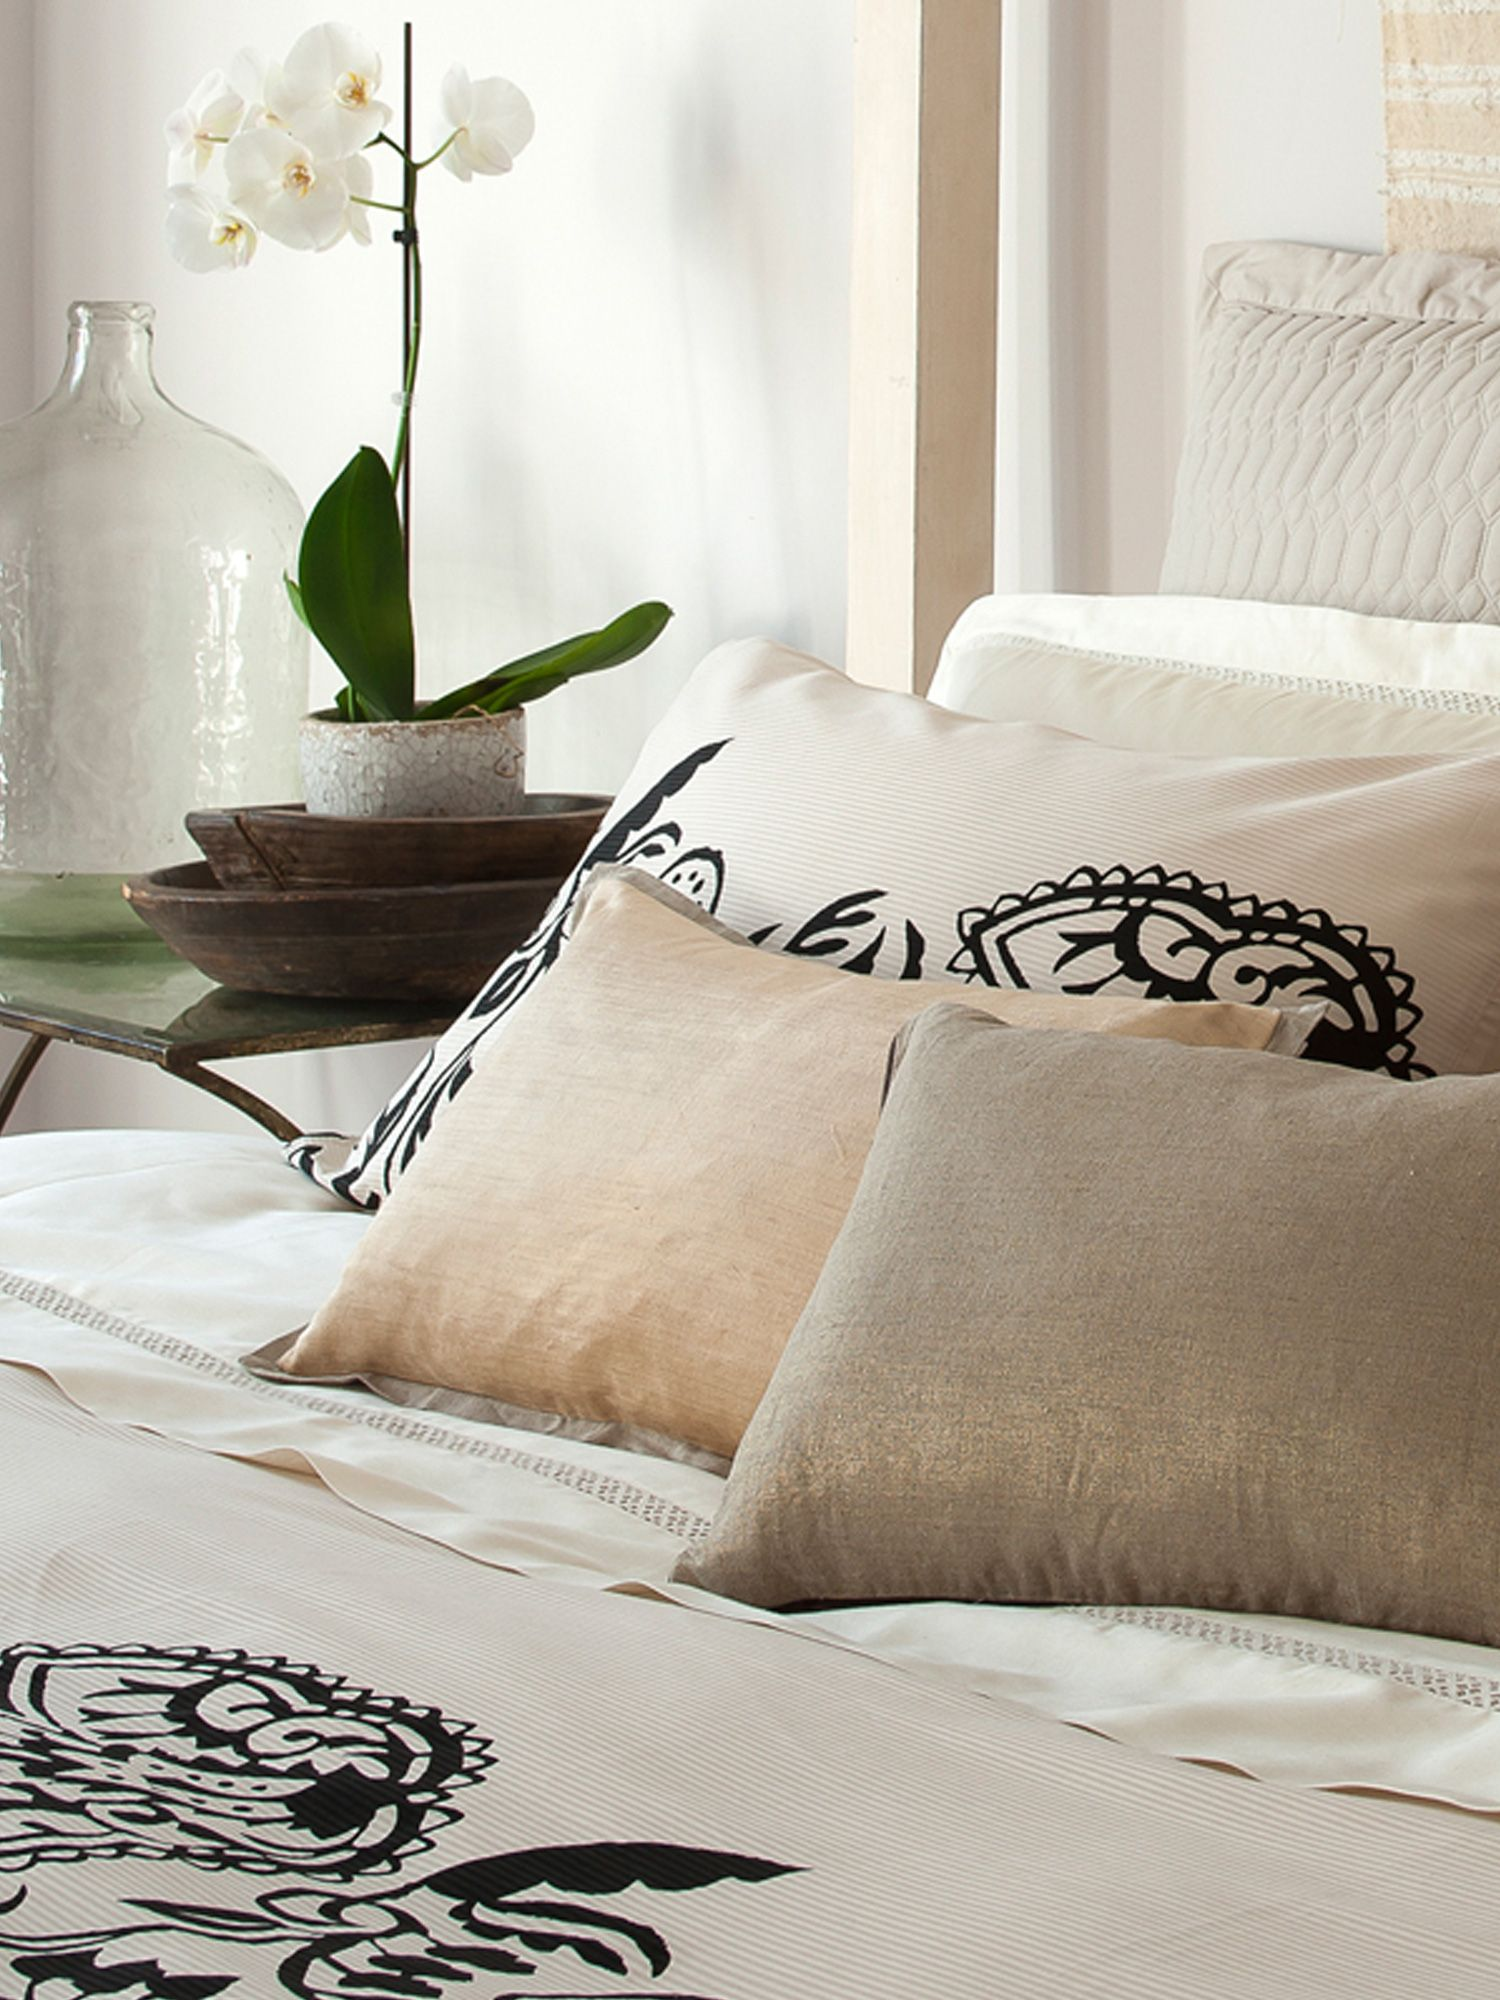 Castelle bed linen range in calico